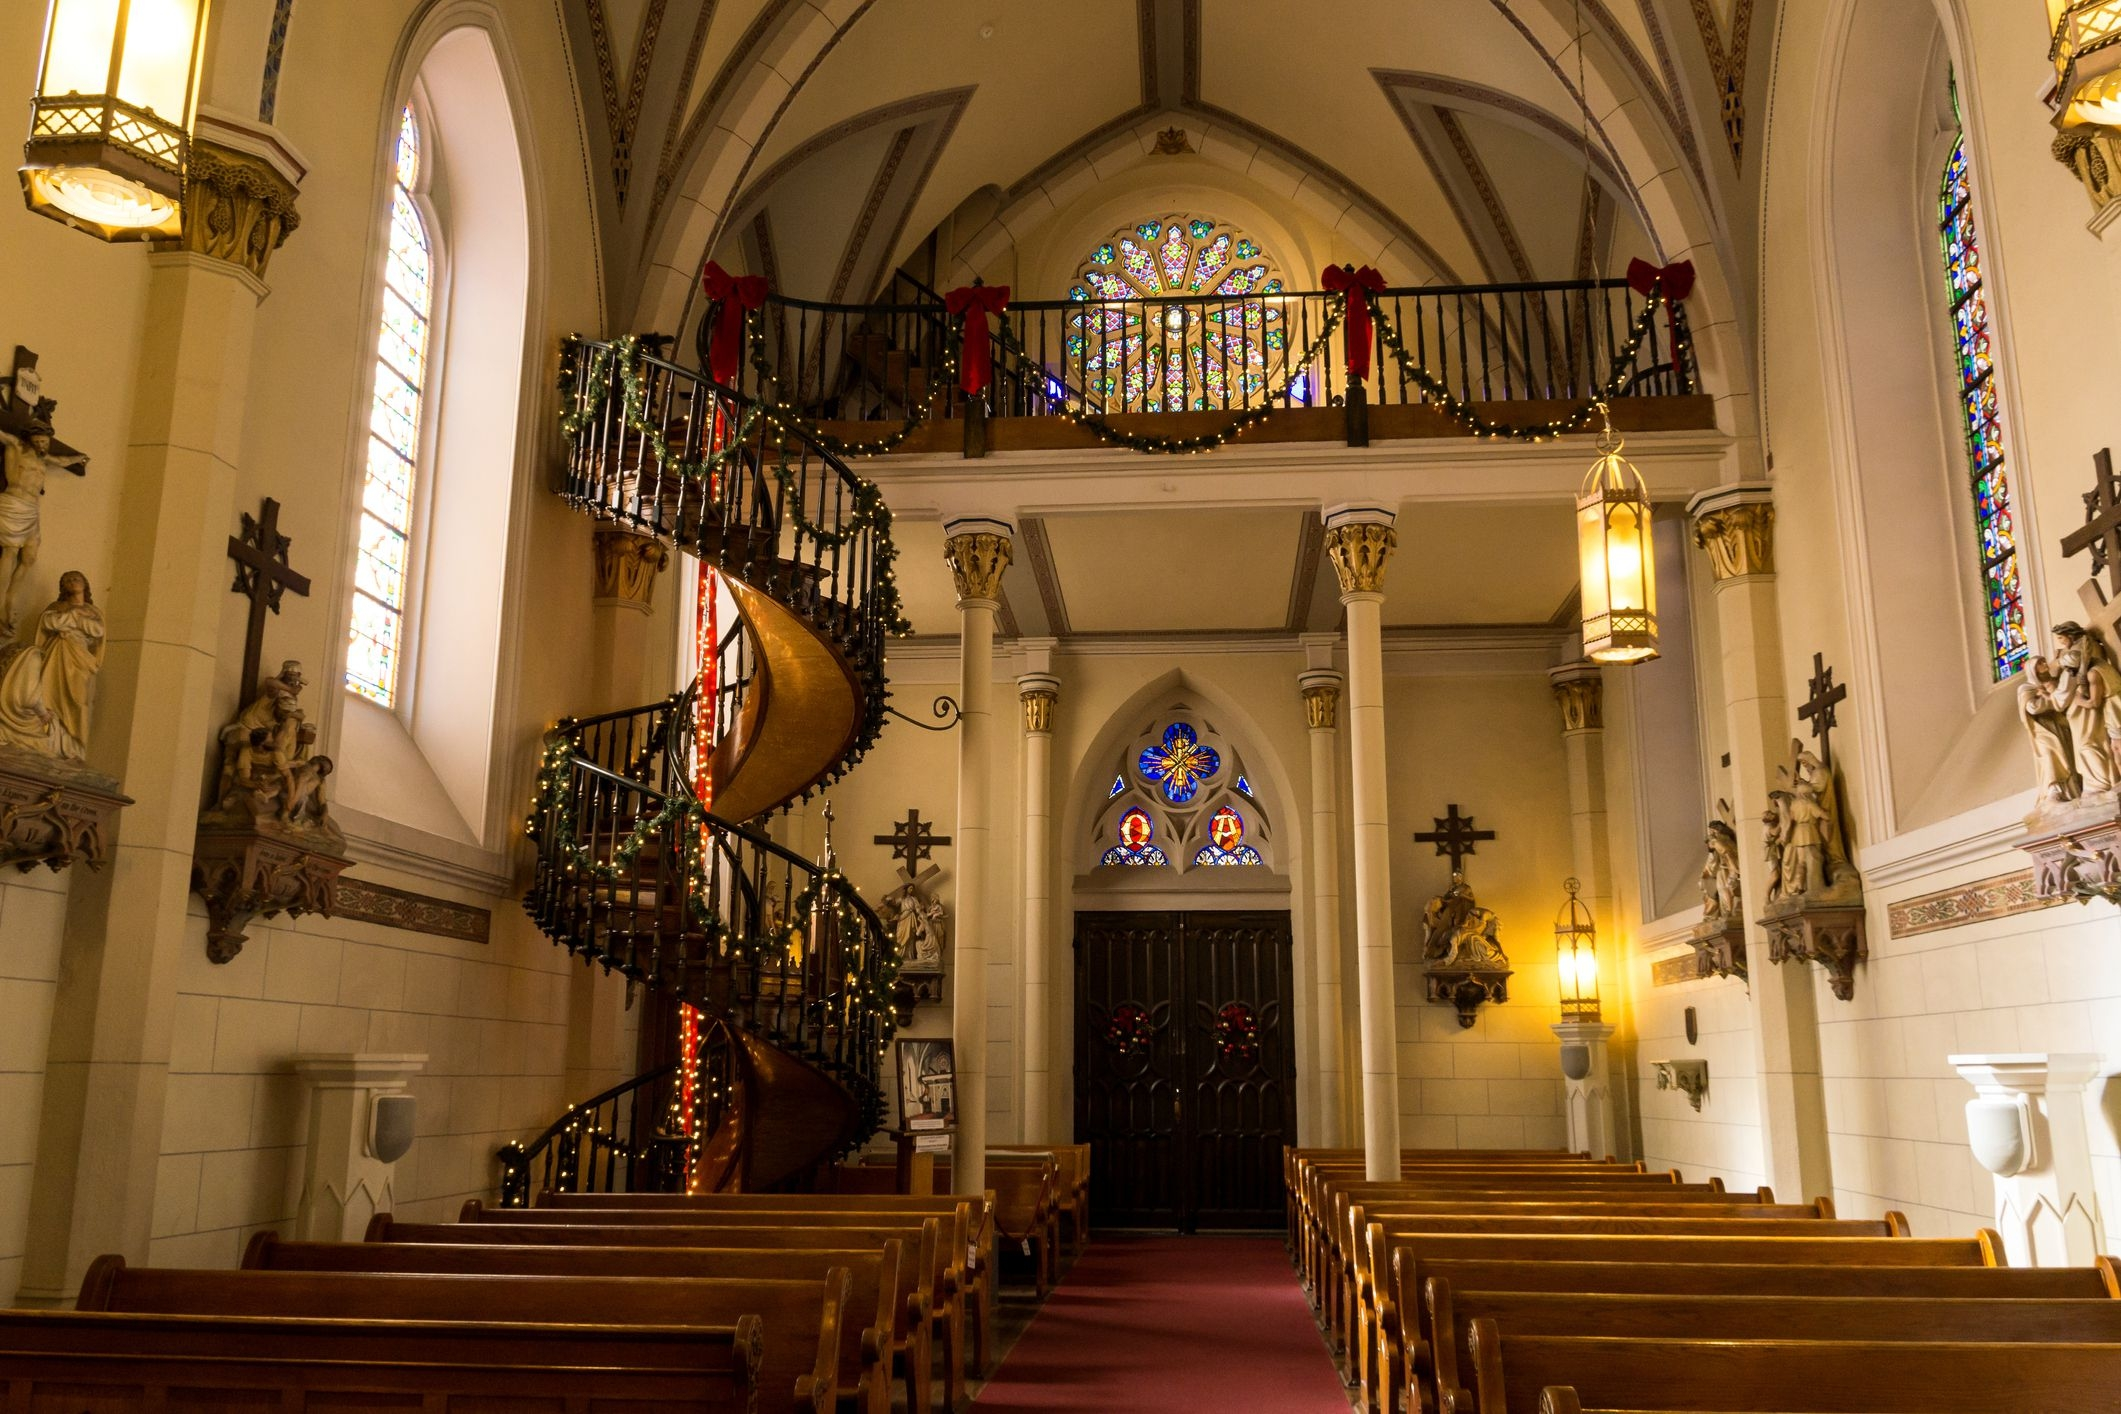 The Loretto Chapel S Miraculous Staircase   Stairs Of Loretto Chapel